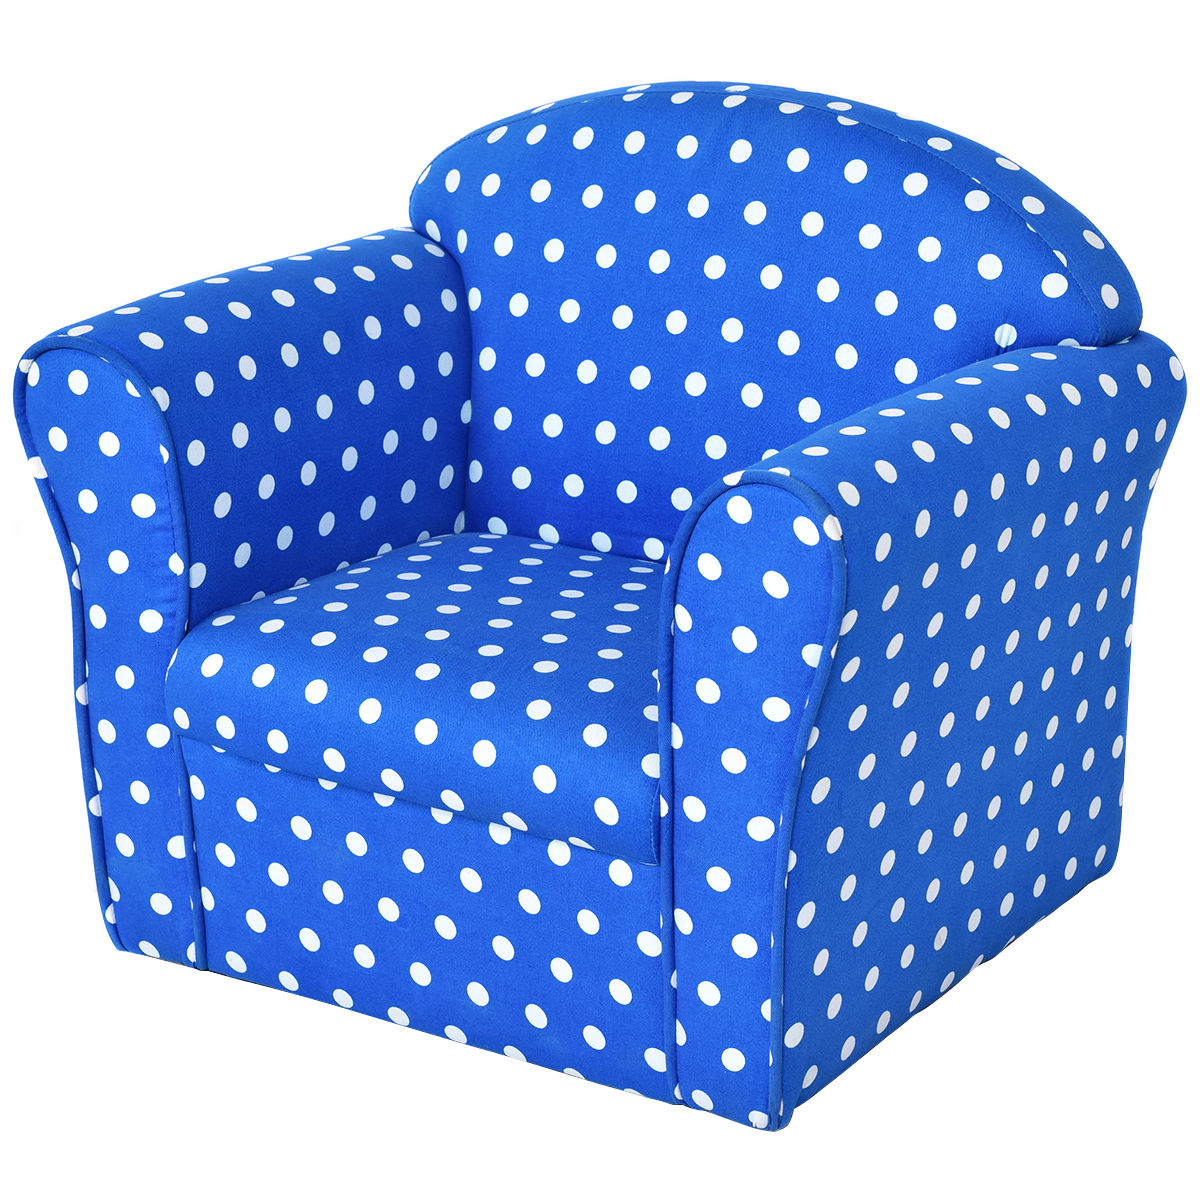 Costway Blue W/Dots Kid Sofa Armrest Chair Couch Children Living Room  Toddler Furniture